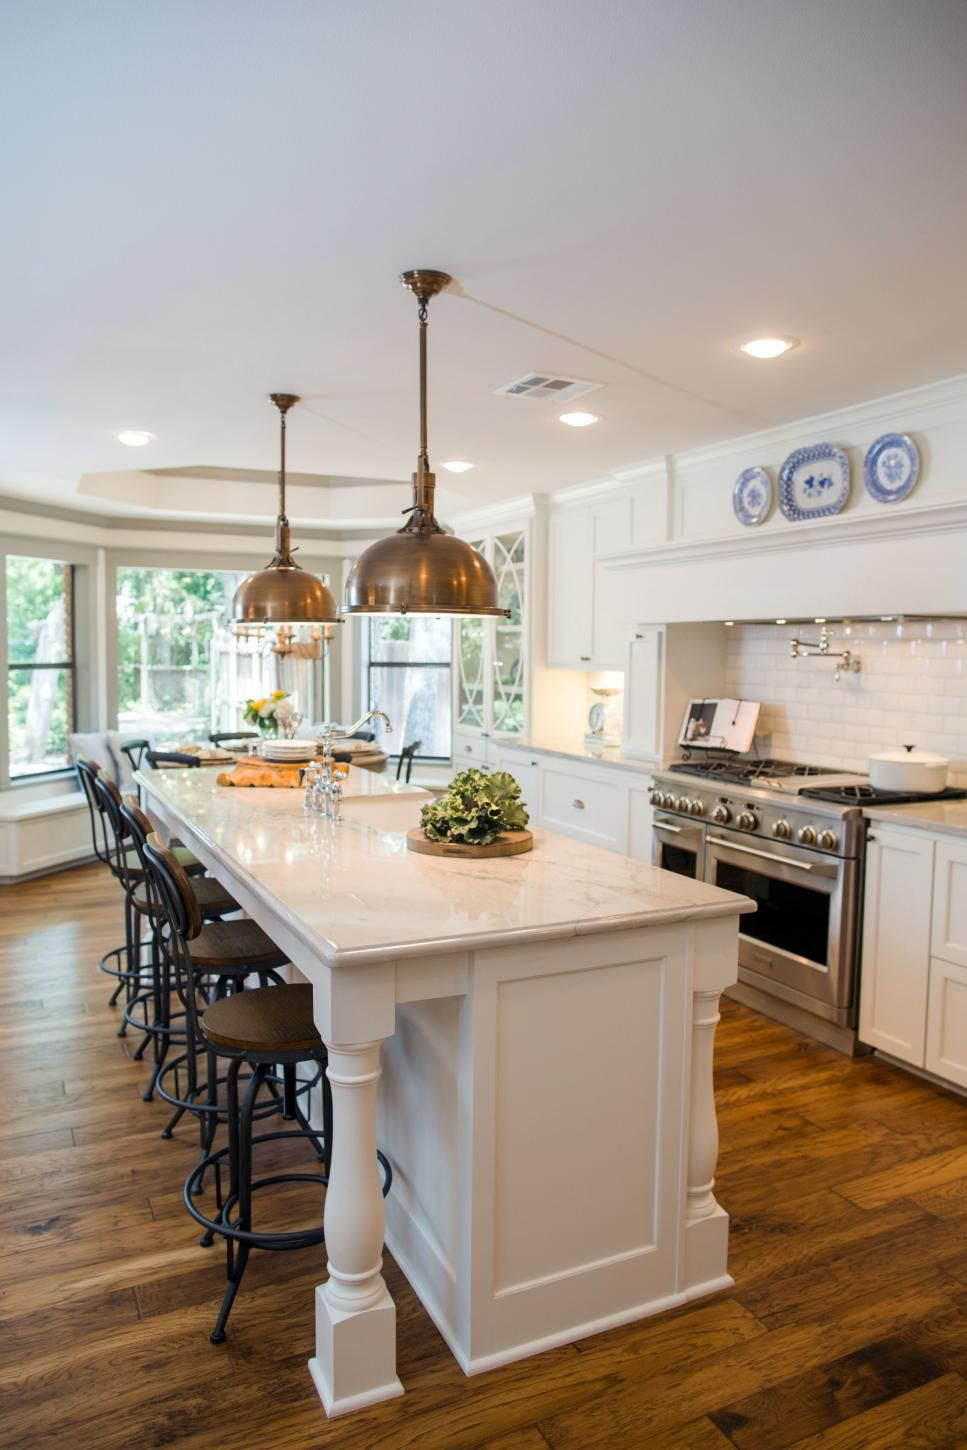 Fixer upper reclaimed wood kitchen island - Get The Look Fixer Upper Kitchen Farmhouse Kitchen Island I Am And Islands